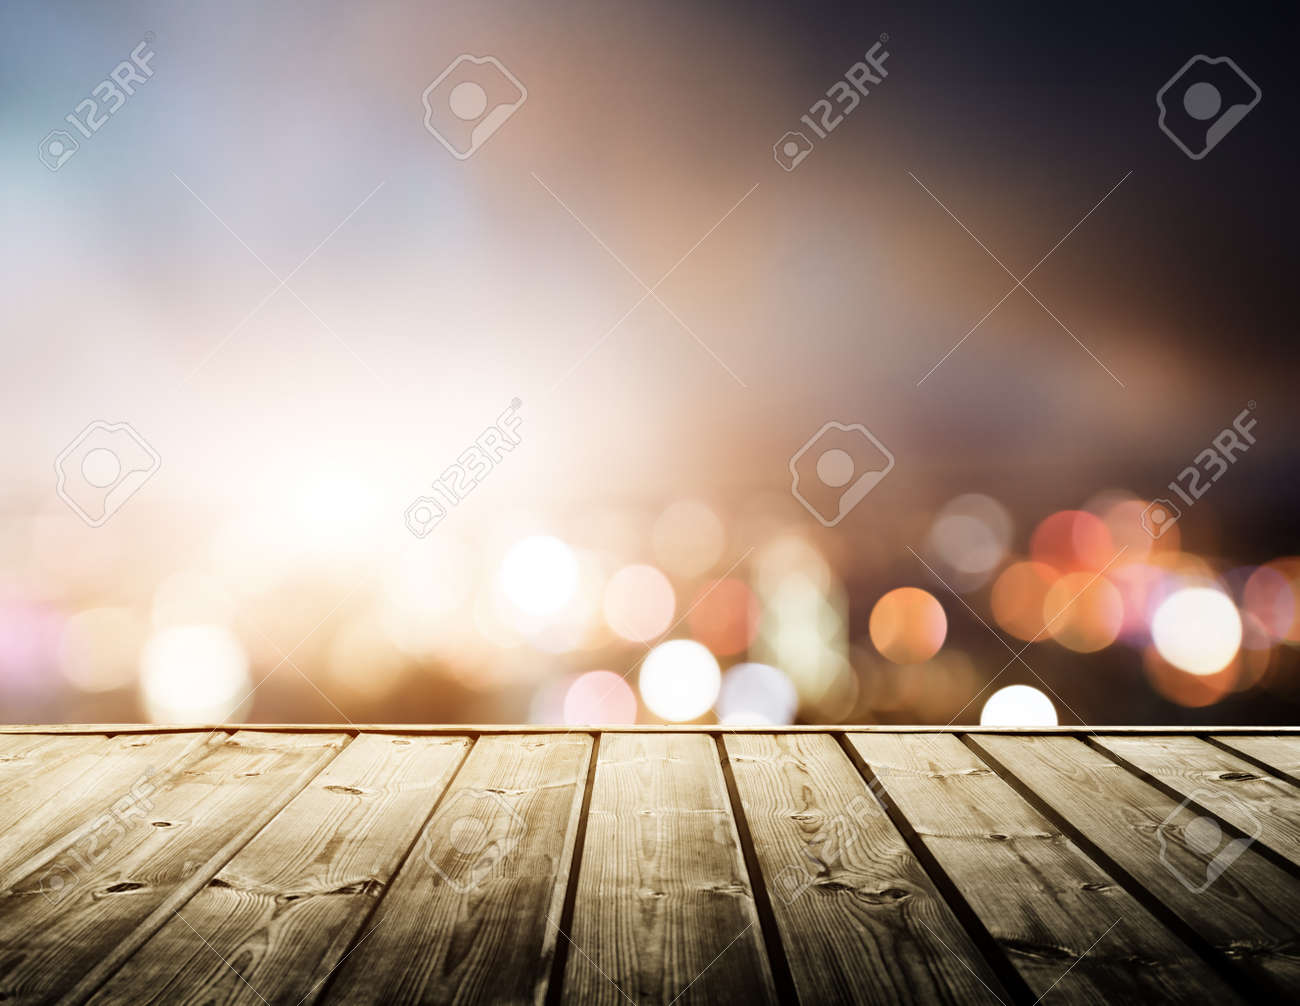 wooden platform and lights of night Hong Kong Stock Photo - 22412776